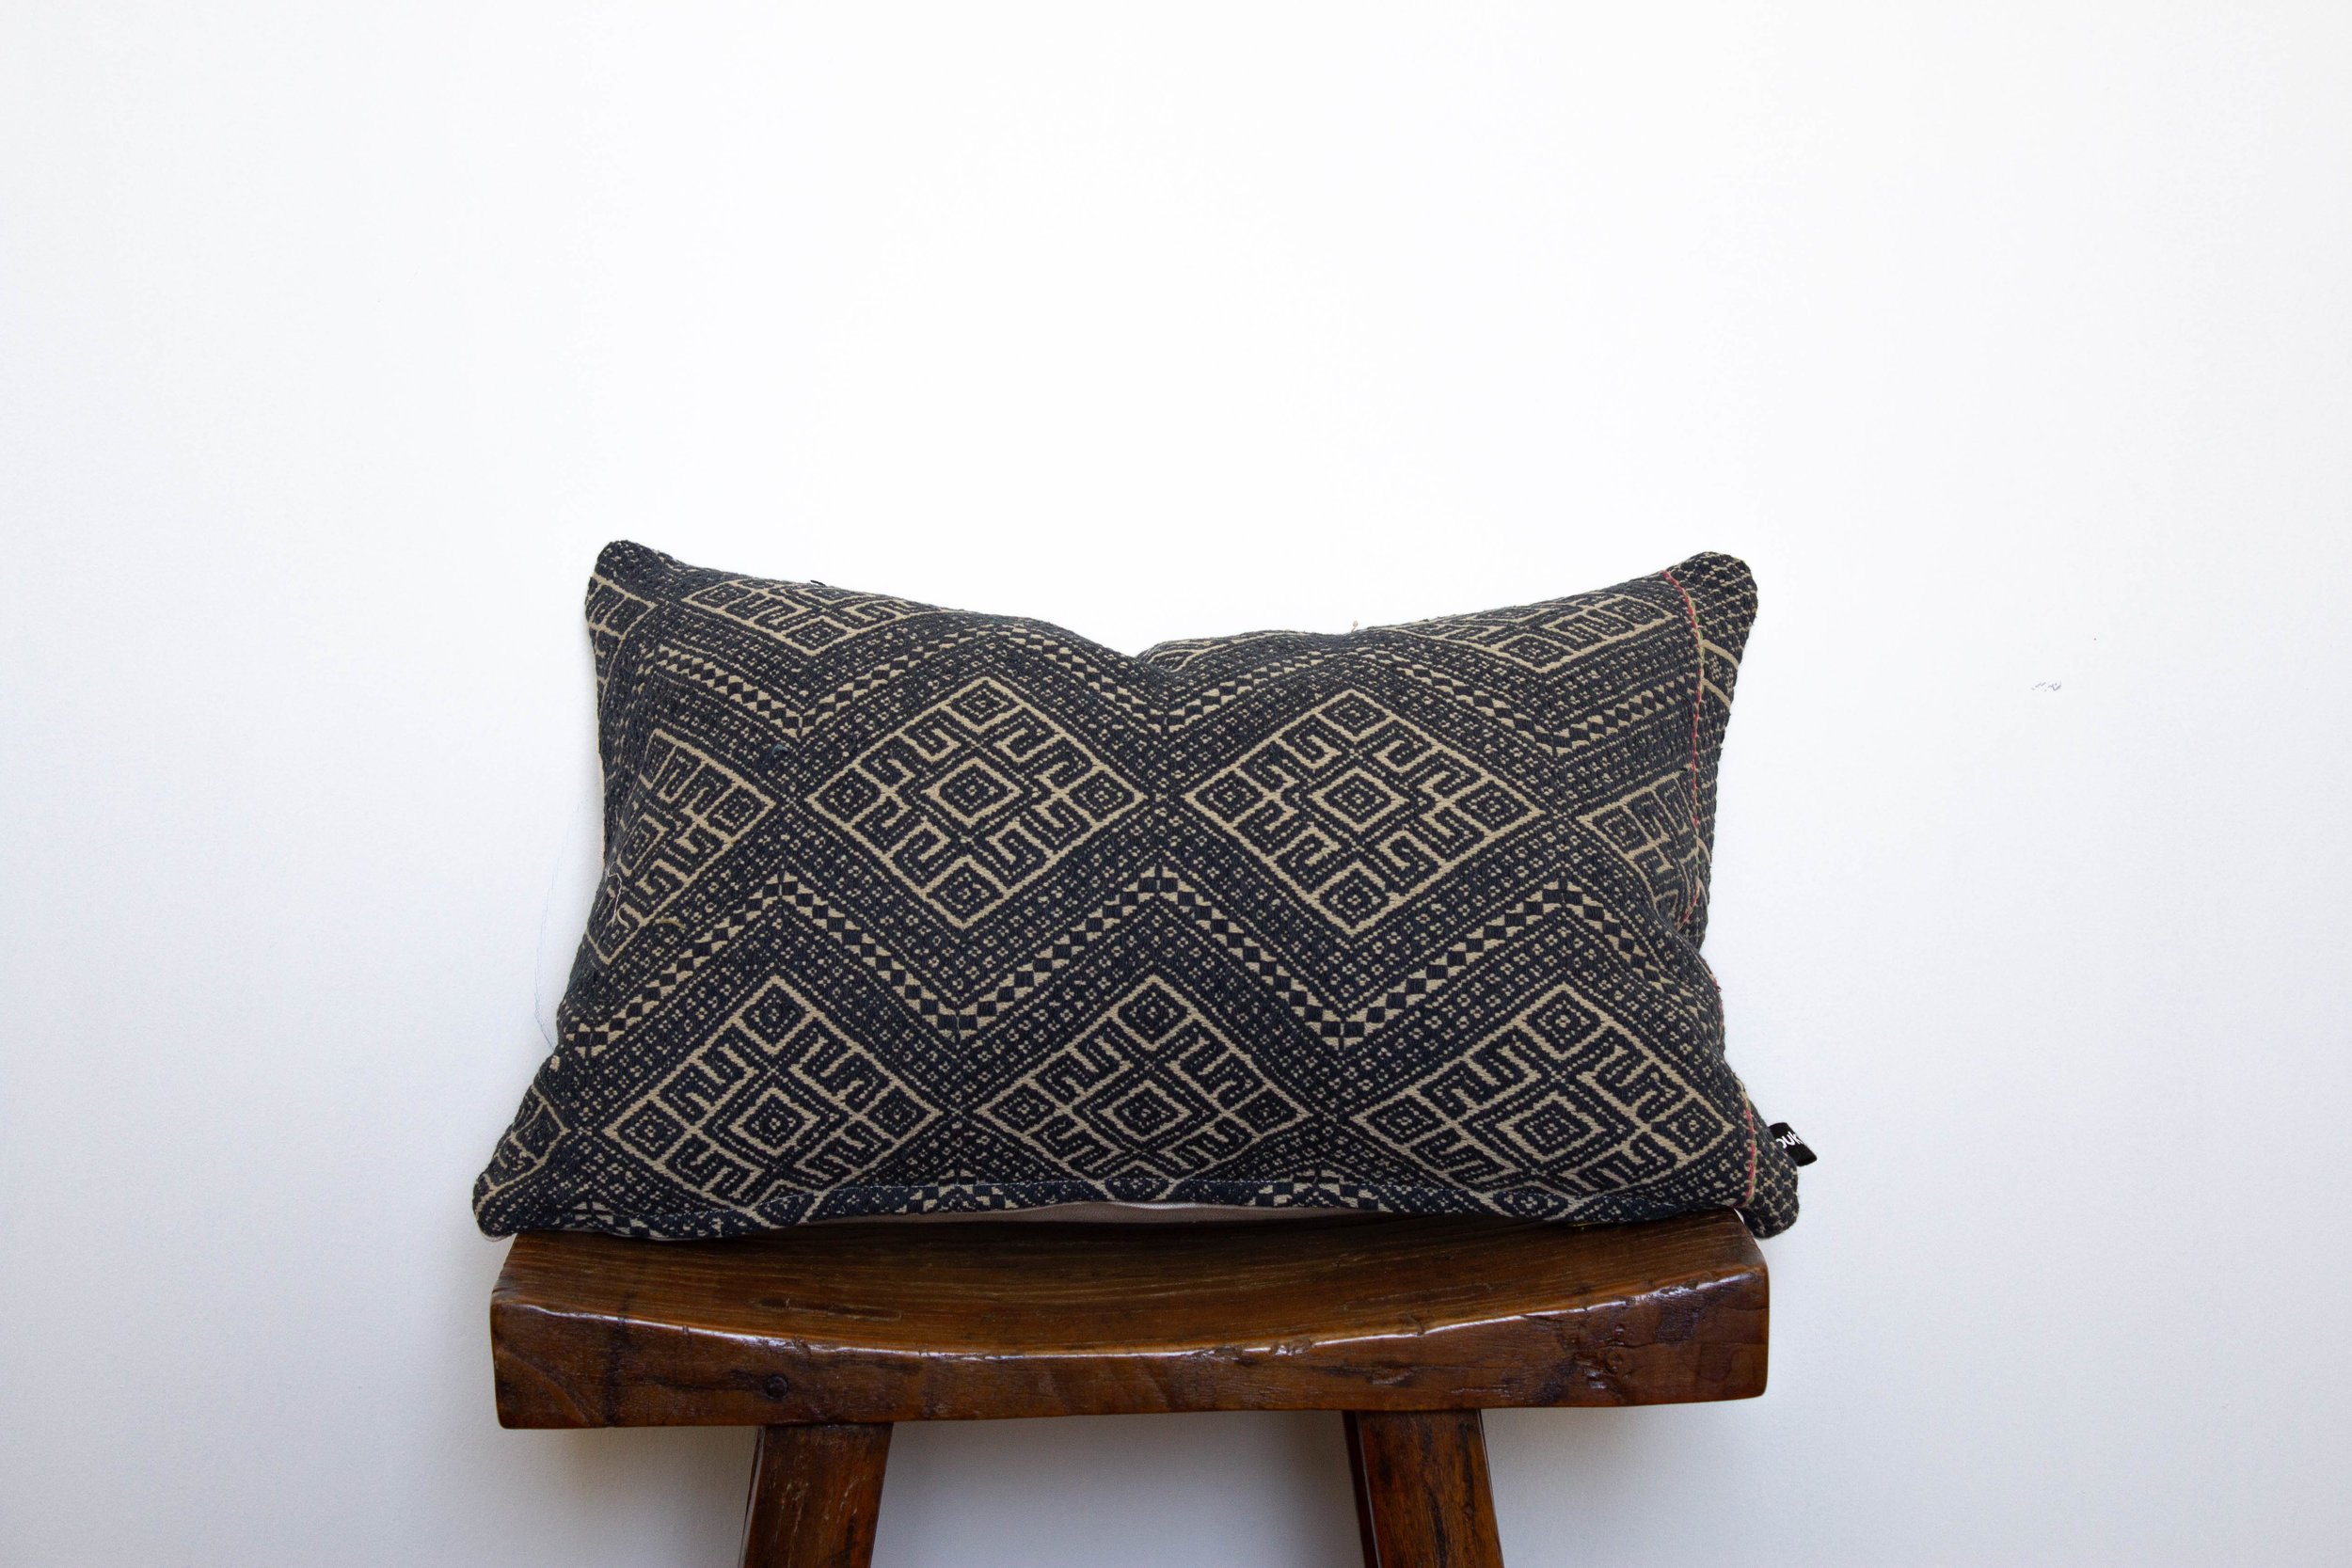 Jenna-1 available    400 RMB  Pillow cover is made from vintage, embroidered fabric sourced from southern China  Size: Roughly 46x30 cm  Pillow back is made from a neutral cotton/linen blend  Zipper on bottom of pillow  Down insert included  Hand wash or spot clean recommended